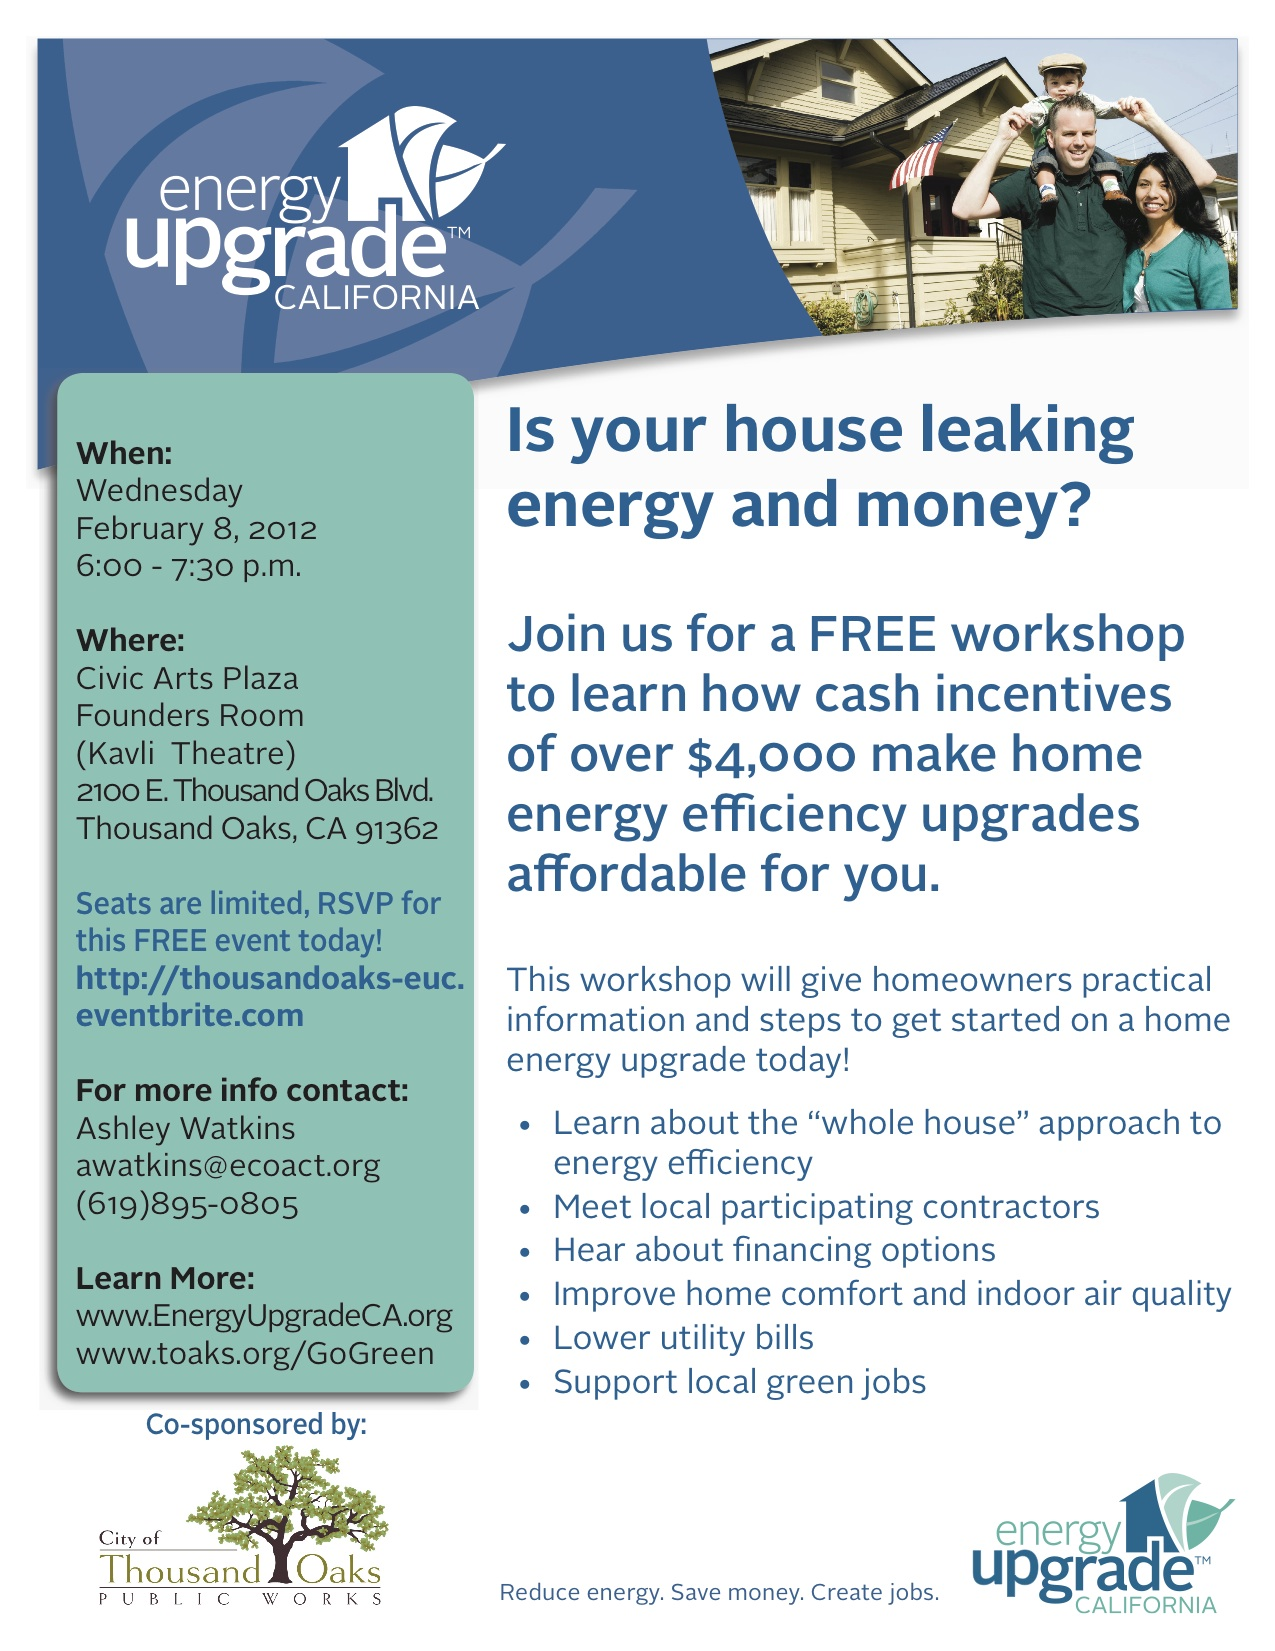 Is Your House Leaking Energy and Money?